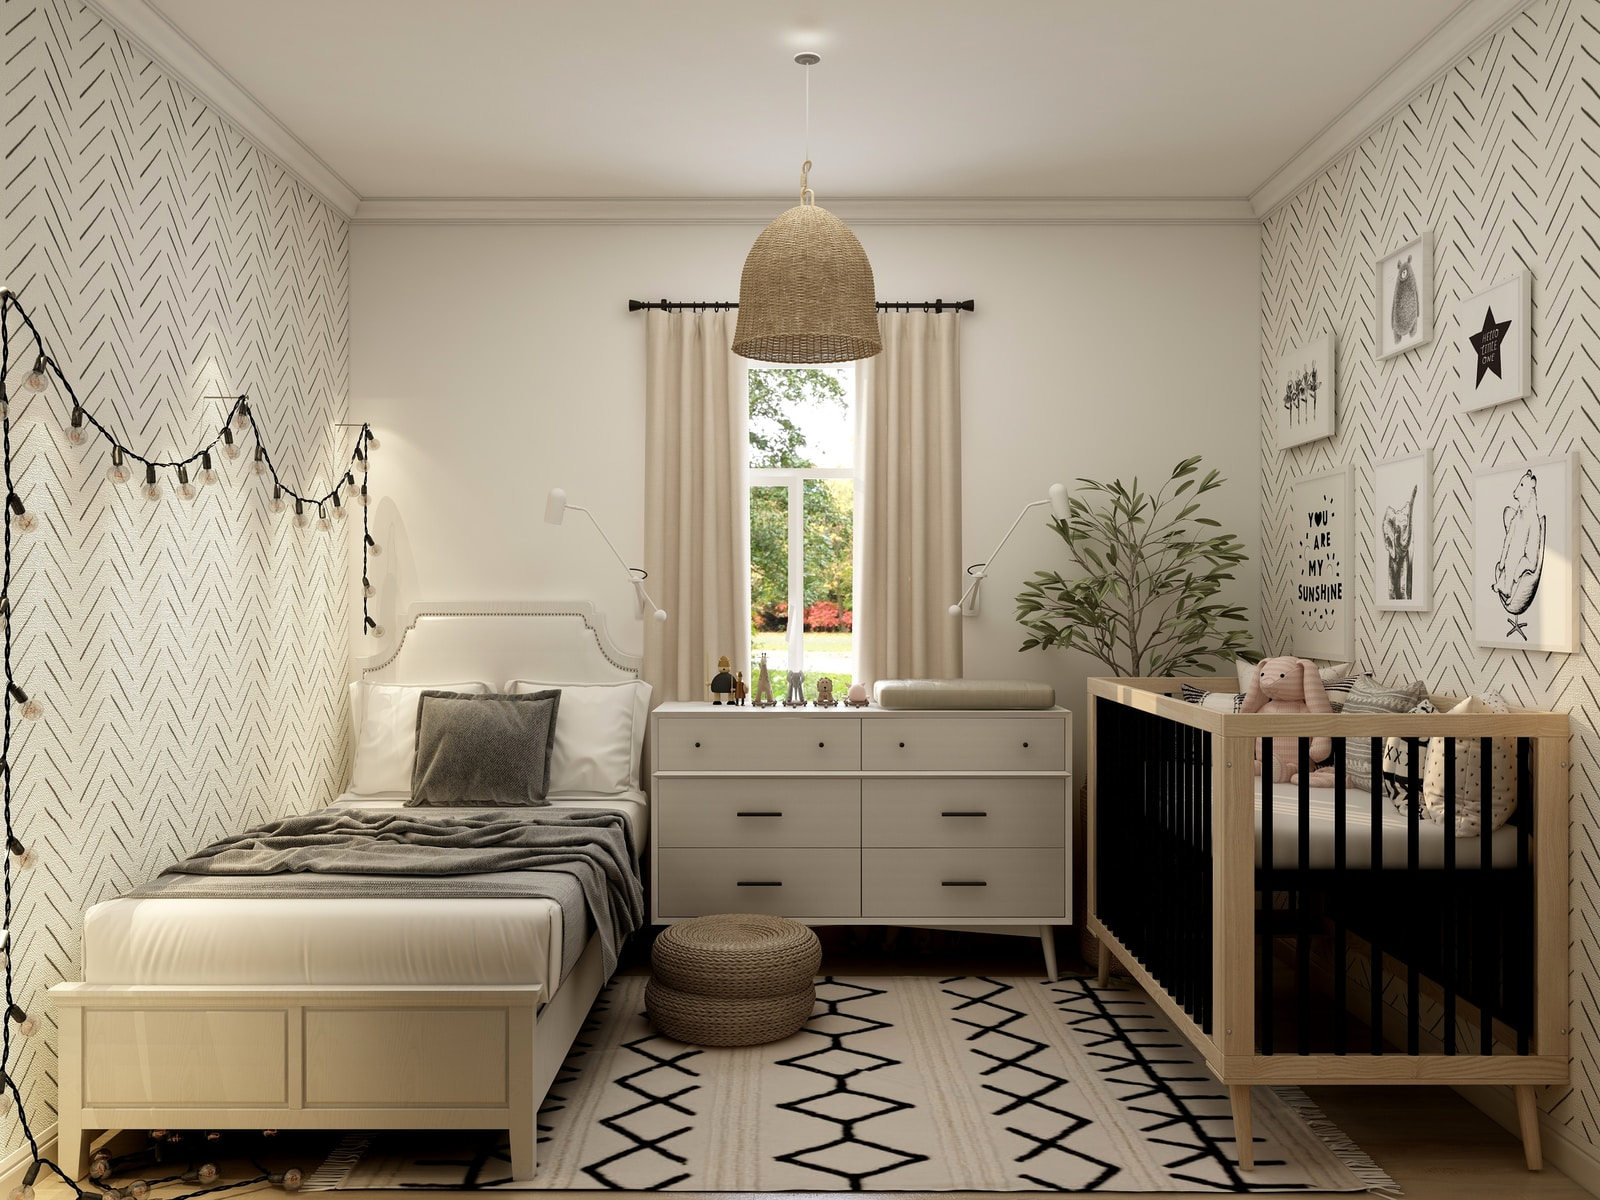 white wooden bed frame with white bed linen